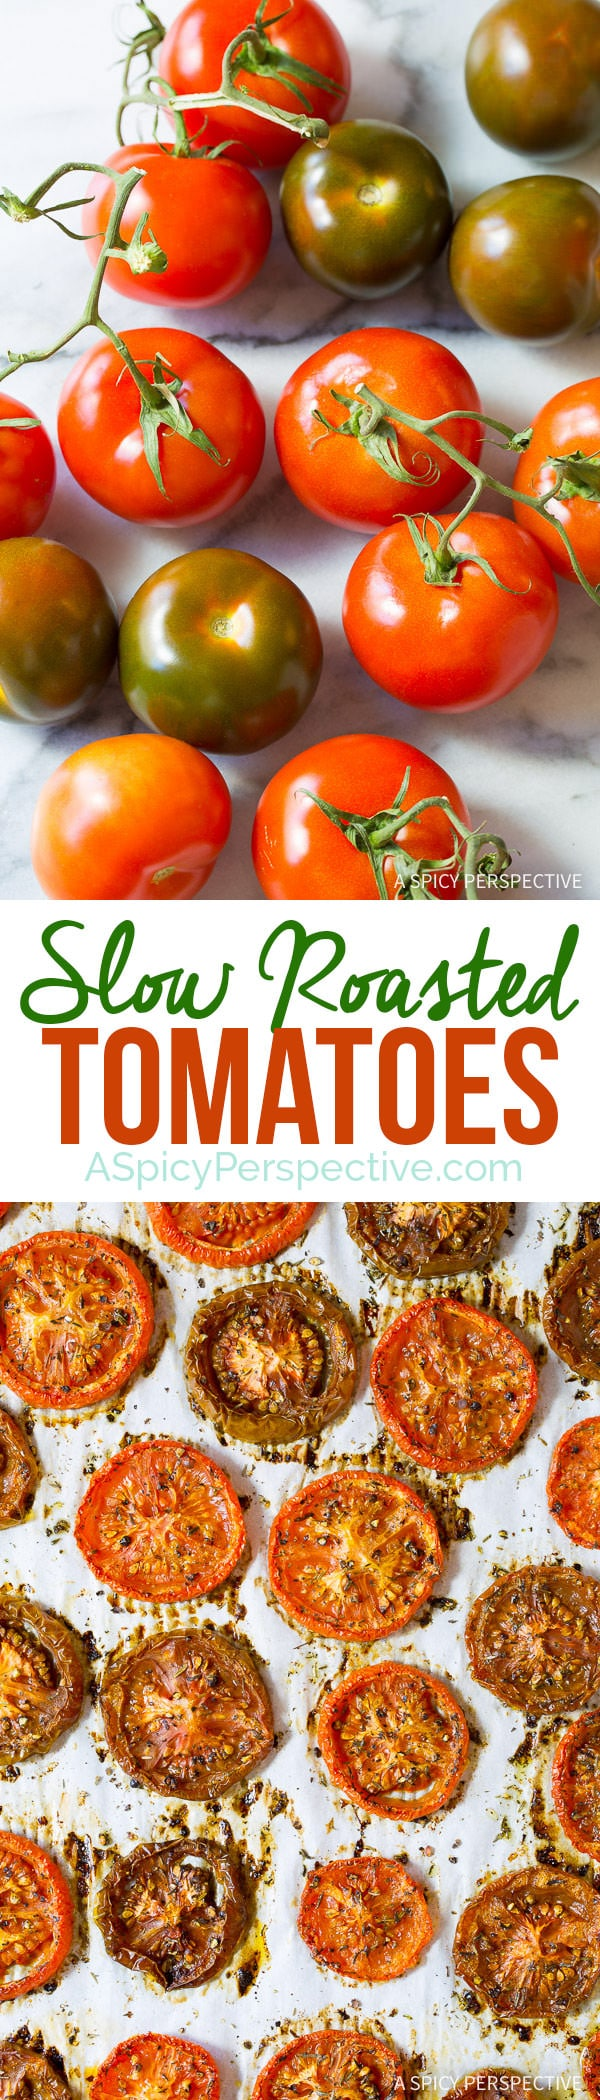 Easy Sweet and Savory Oven Roasted Tomatoes   ASpicyPerspective.com